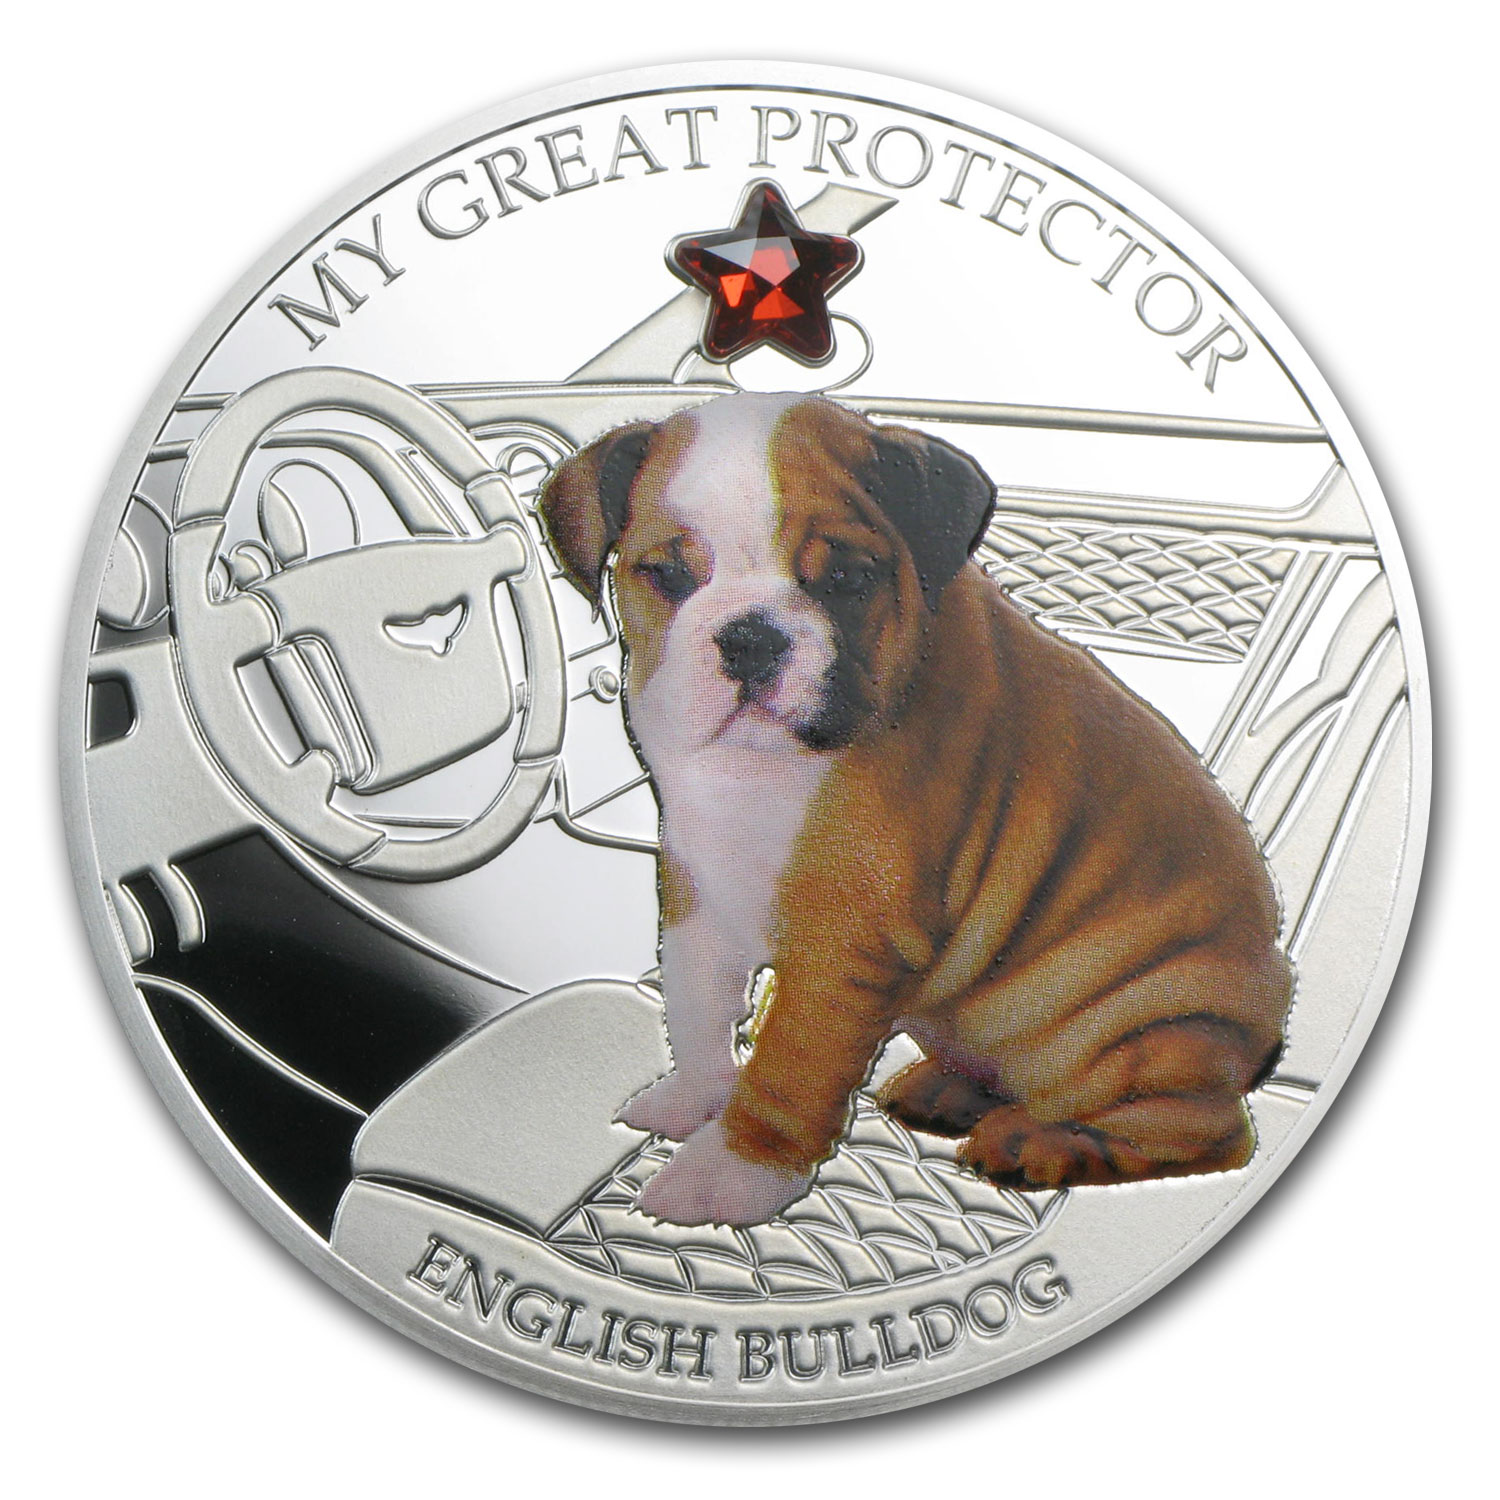 2013 Fiji Silver Dogs & Cats Series Grt Protector English Bulldog